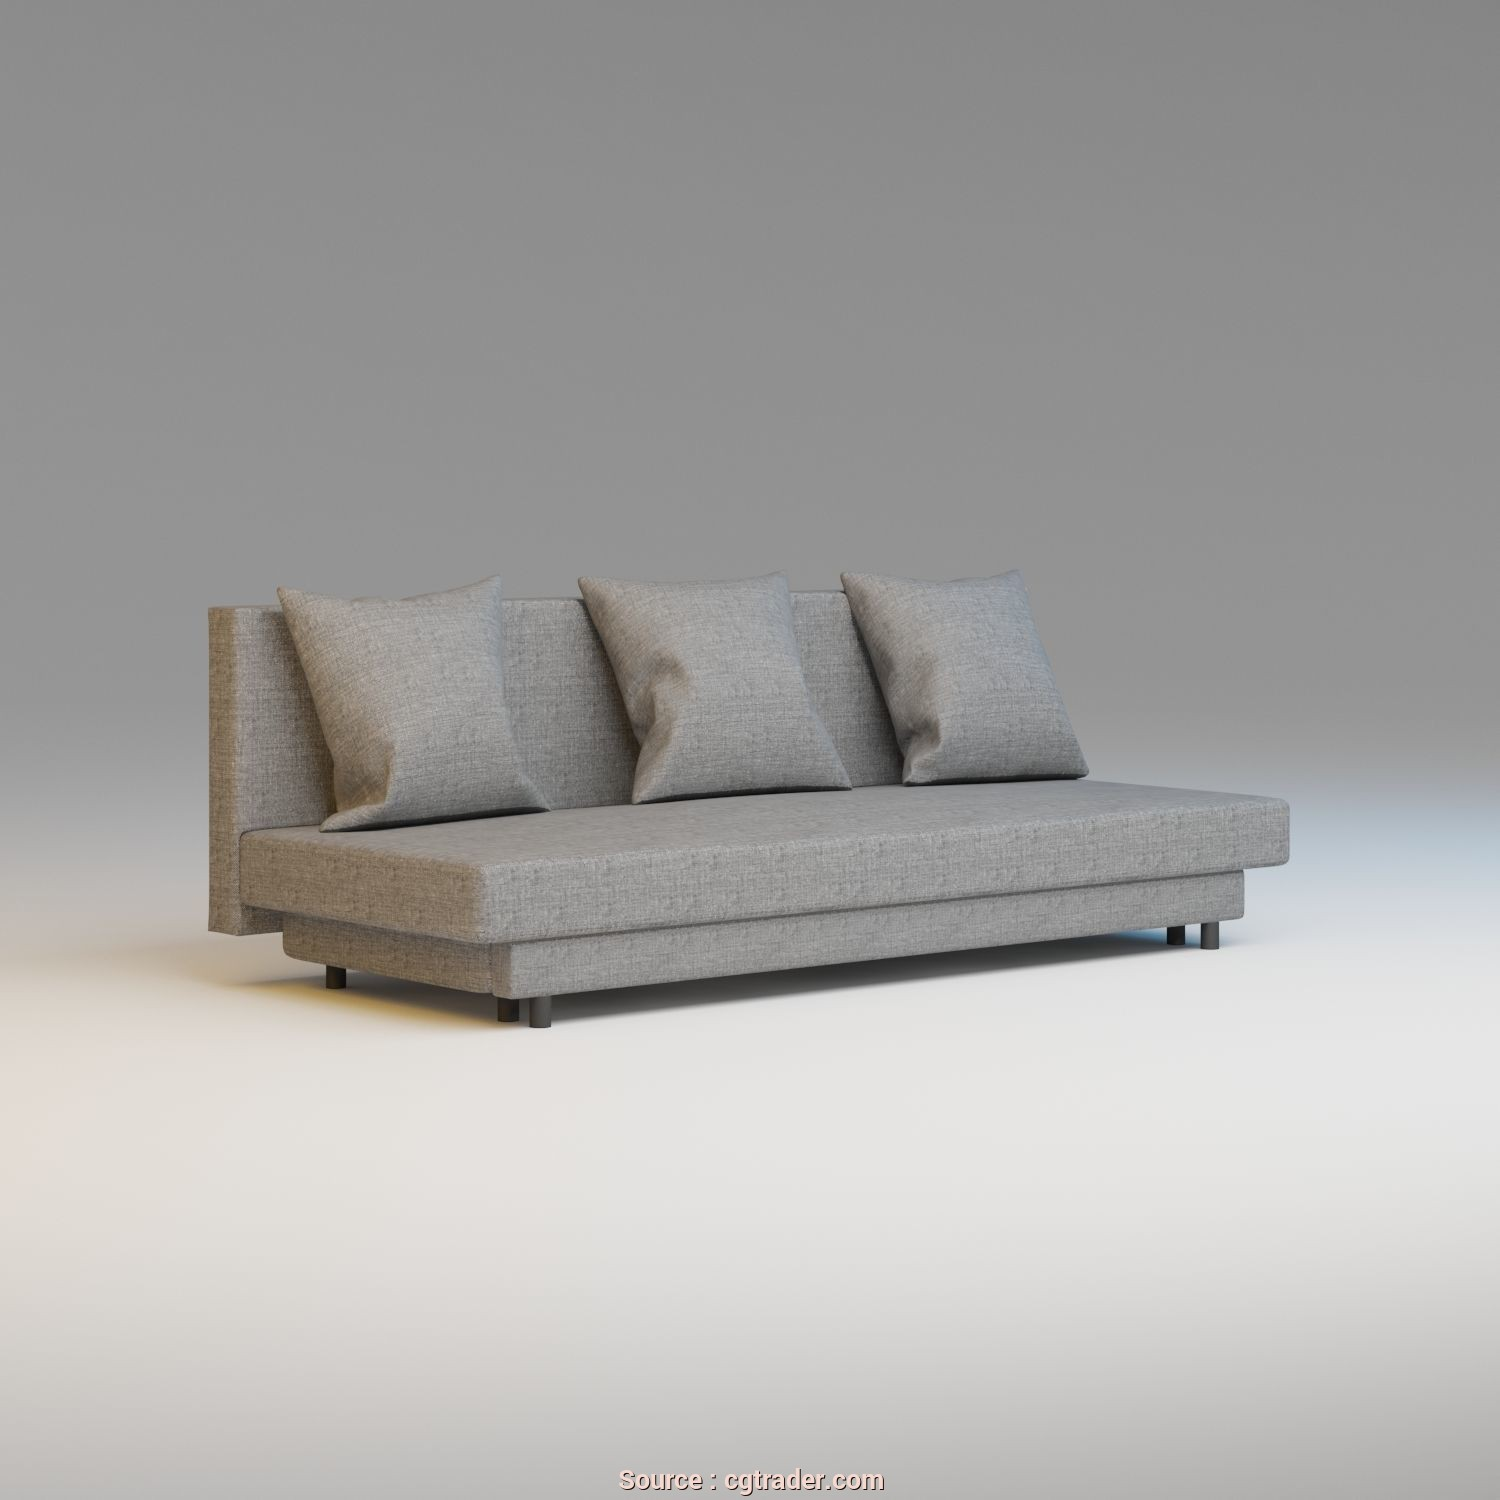 Asarum Ikea Avis, Bello Ikea, Asarum Sofa 3D Model, Obj, 3Ds, 1